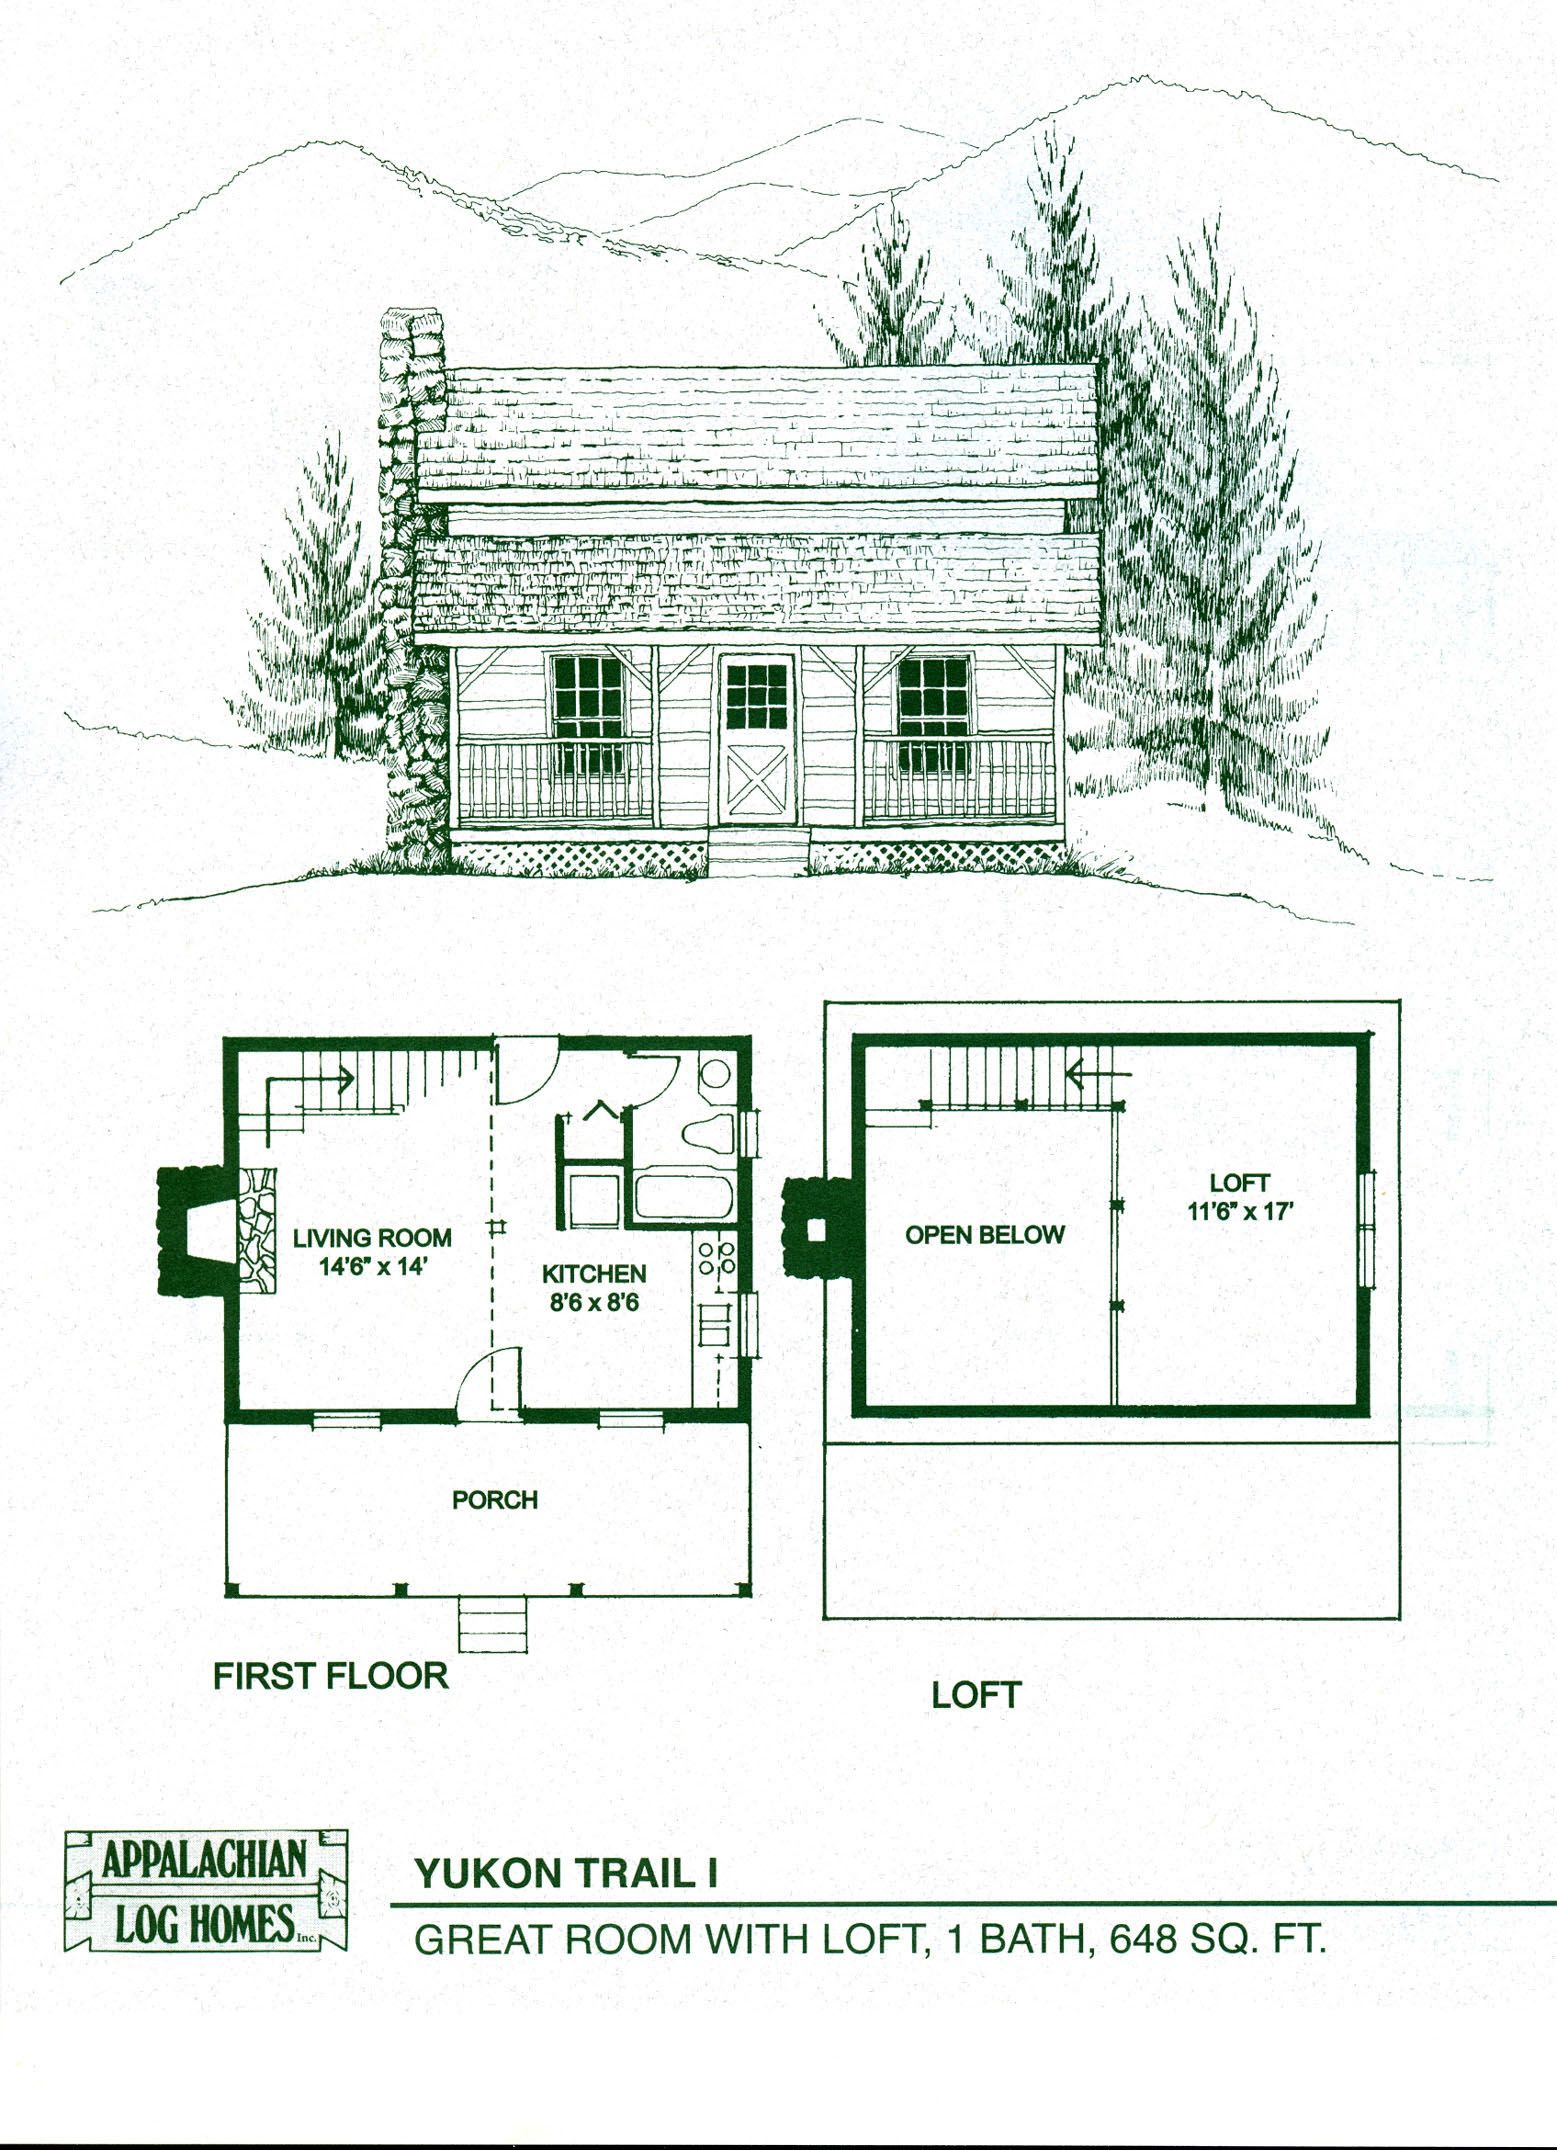 Log home floor plans log cabin kits appalachian log homes crafts and sewing ideas Free house layouts floor plans